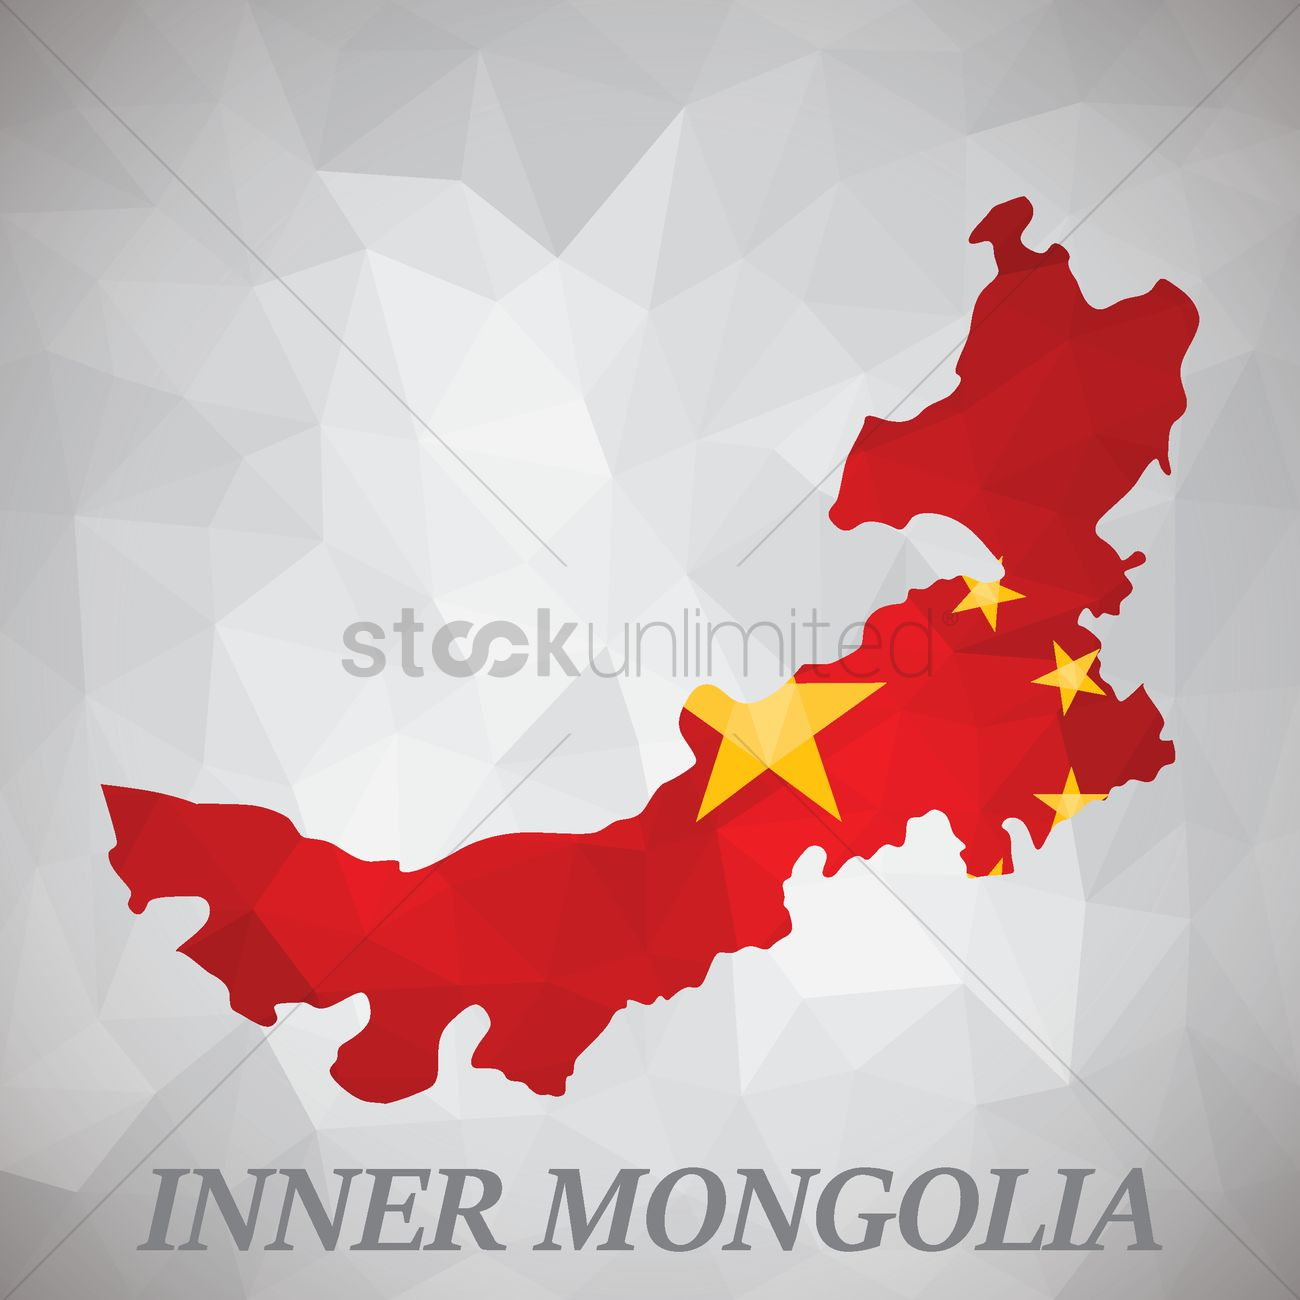 Inner Mongolia Map Vector Image StockUnlimited - Mongolia map vector